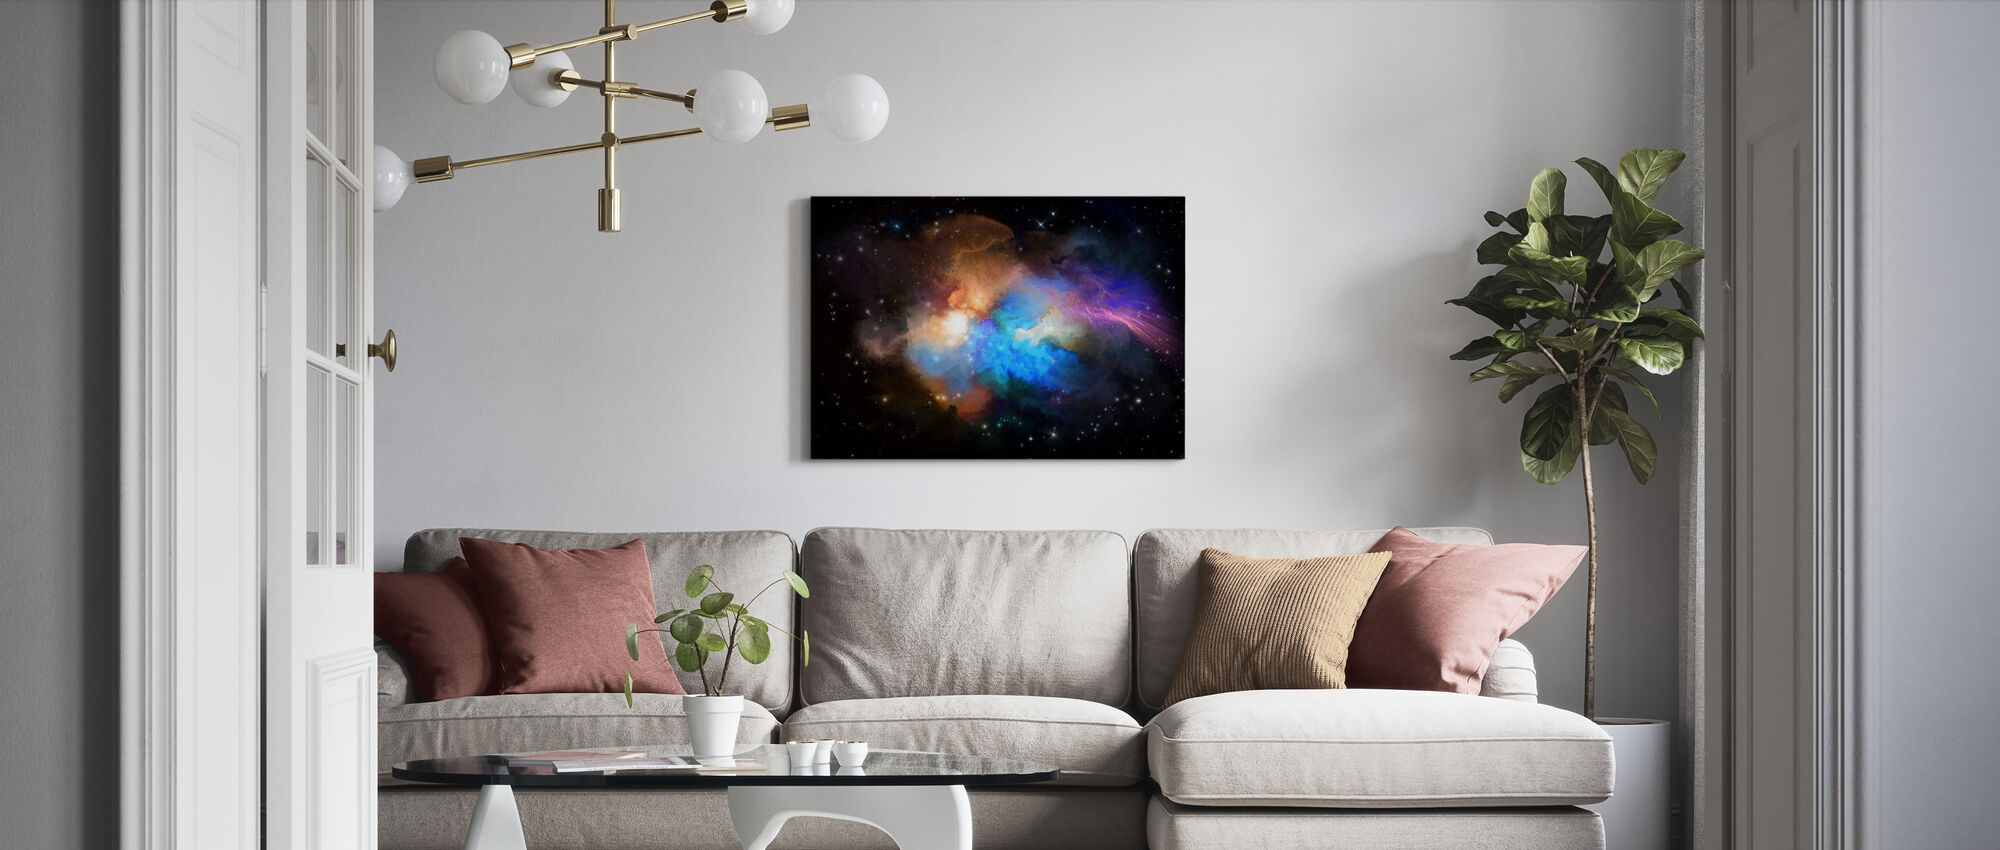 Multicolored Nebula - Canvas print - Living Room